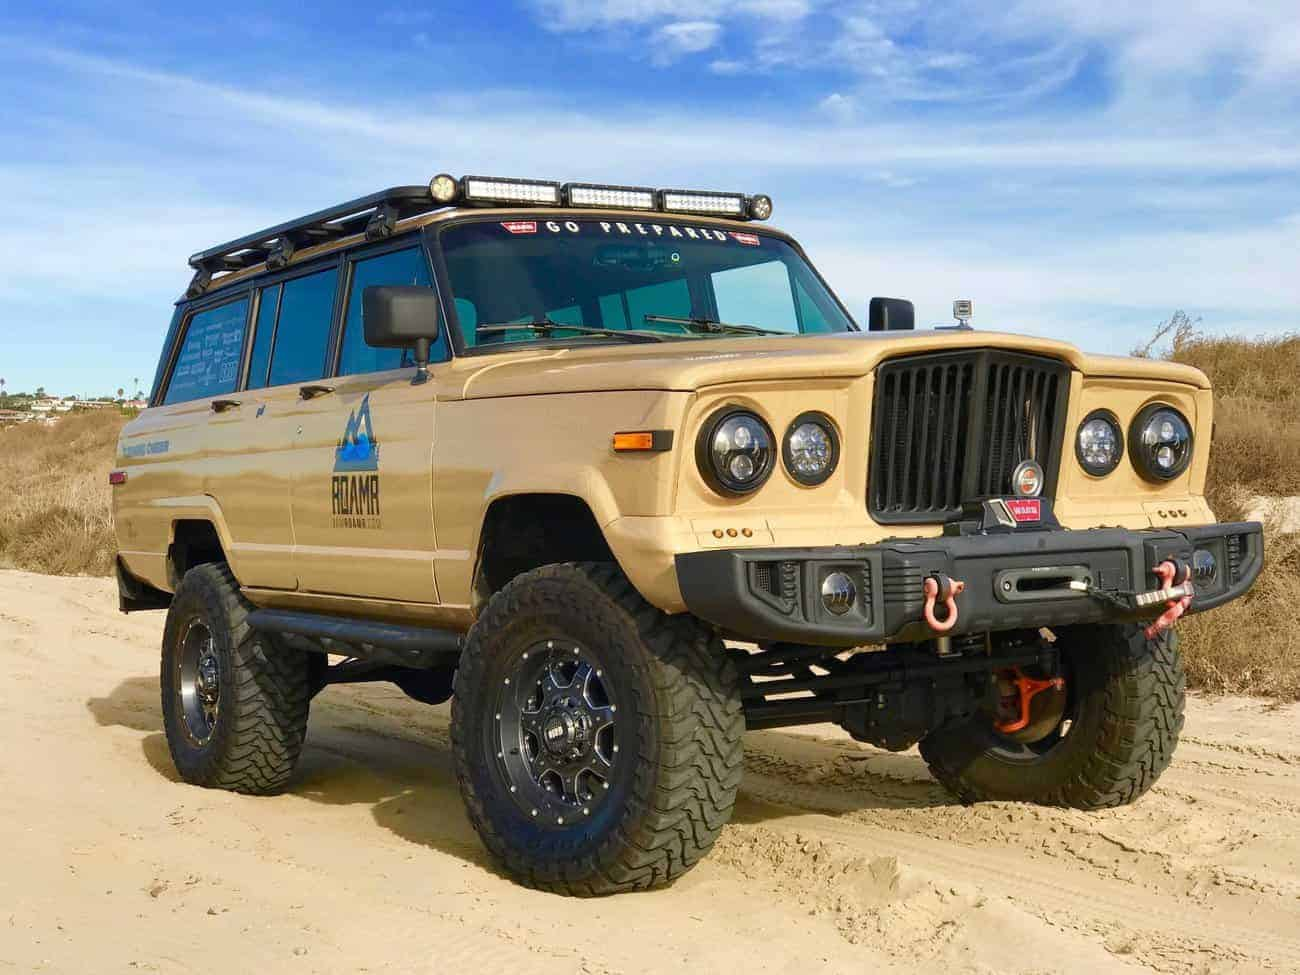 Expedition Portal Classifieds: ROAMR Wagoneer